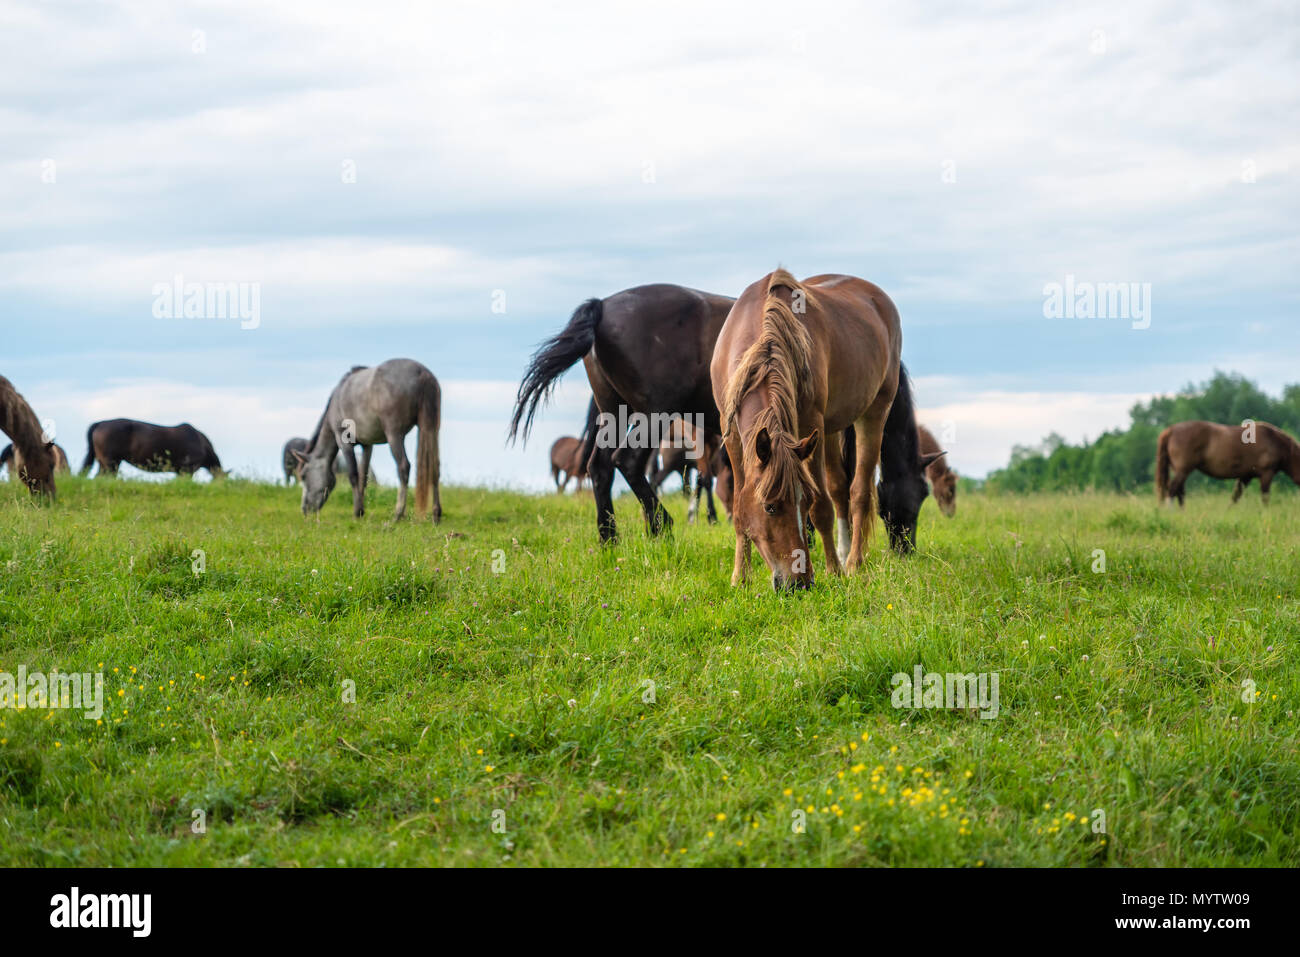 Herd of horses grazing in a meadow, beautiful rural landscape with cloudy sky. Stories about rural life in Ukraine Stock Photo